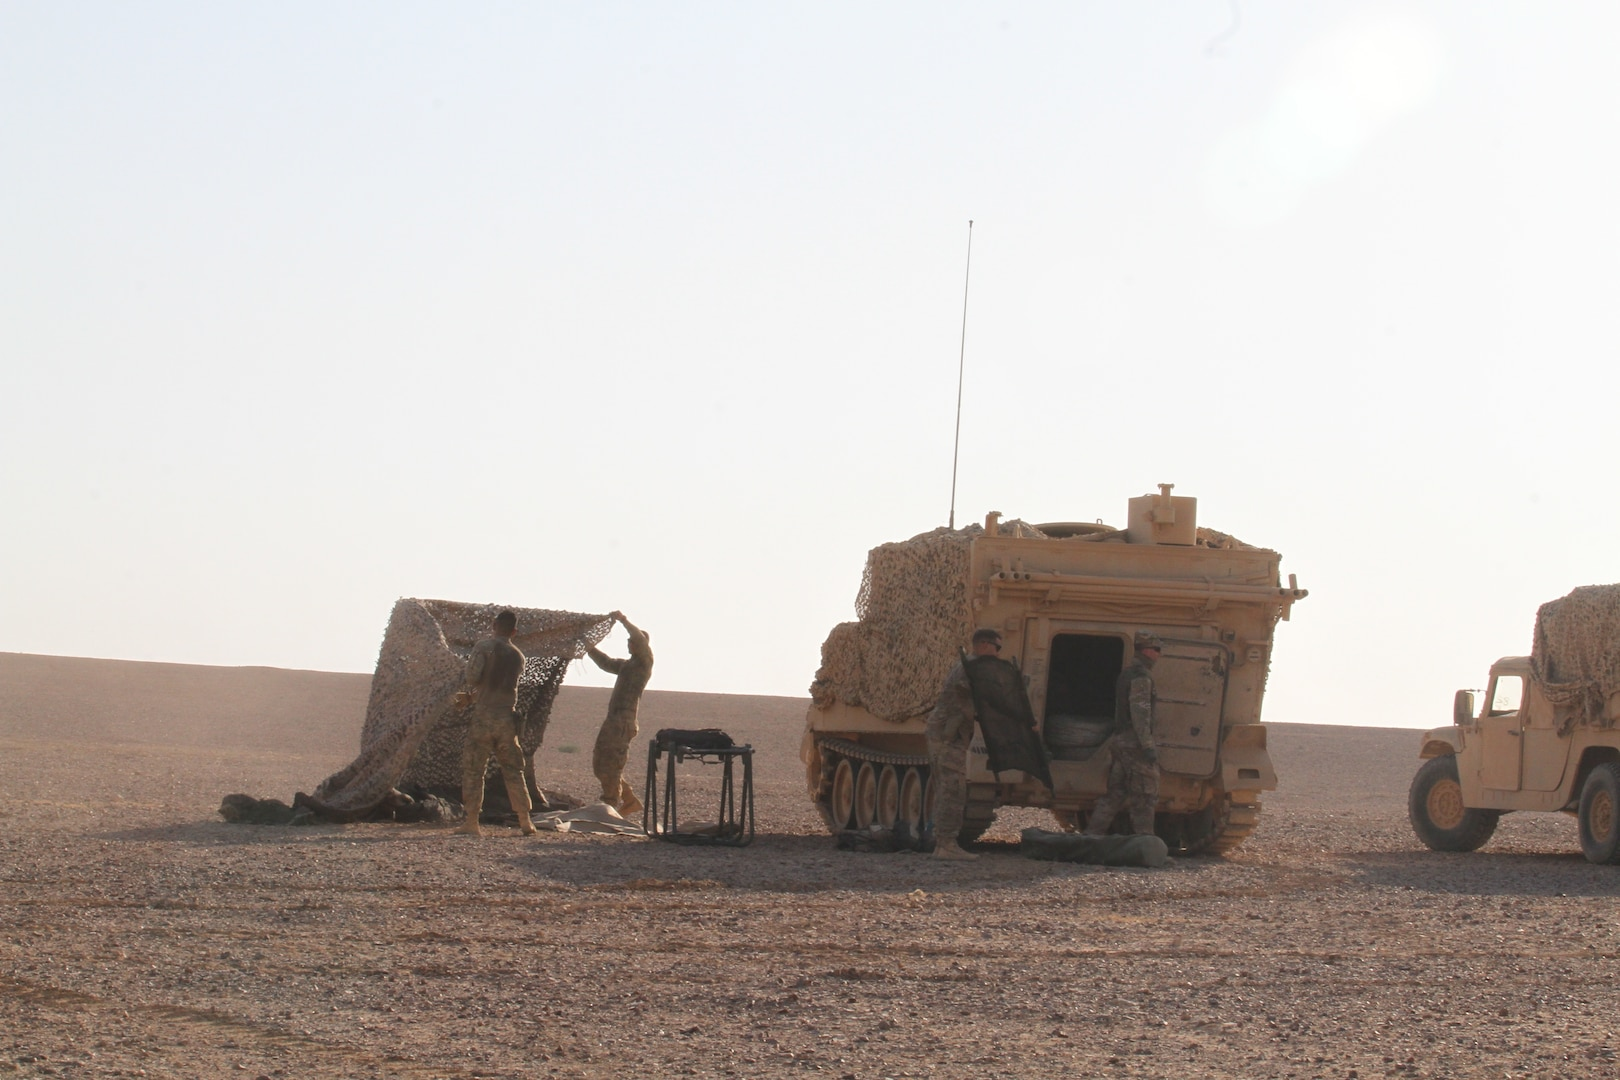 Soldiers with the Medical Platoon, Headquarters and Headquarters Company, 1st Battalion, 68th Armor Regiment, 3rd Armored Brigade Combat Team, 4th Infantry Division, Task Force Spartan set up a role one medical station Aug. 24, 2019, in Jordan as part of their preparations for exercise Eager Lion 19. This multinational exercise is U.S. Central Command's premiere exercise in the Levant region and is a major training event that provides U.S. forces, Jordan Armed Forces and 28 other participating nations the opportunity to improve their collective ability to plan and operate in a coalition-type environment. (U.S. Army Reserve photo by Sgt. Zach Mott)